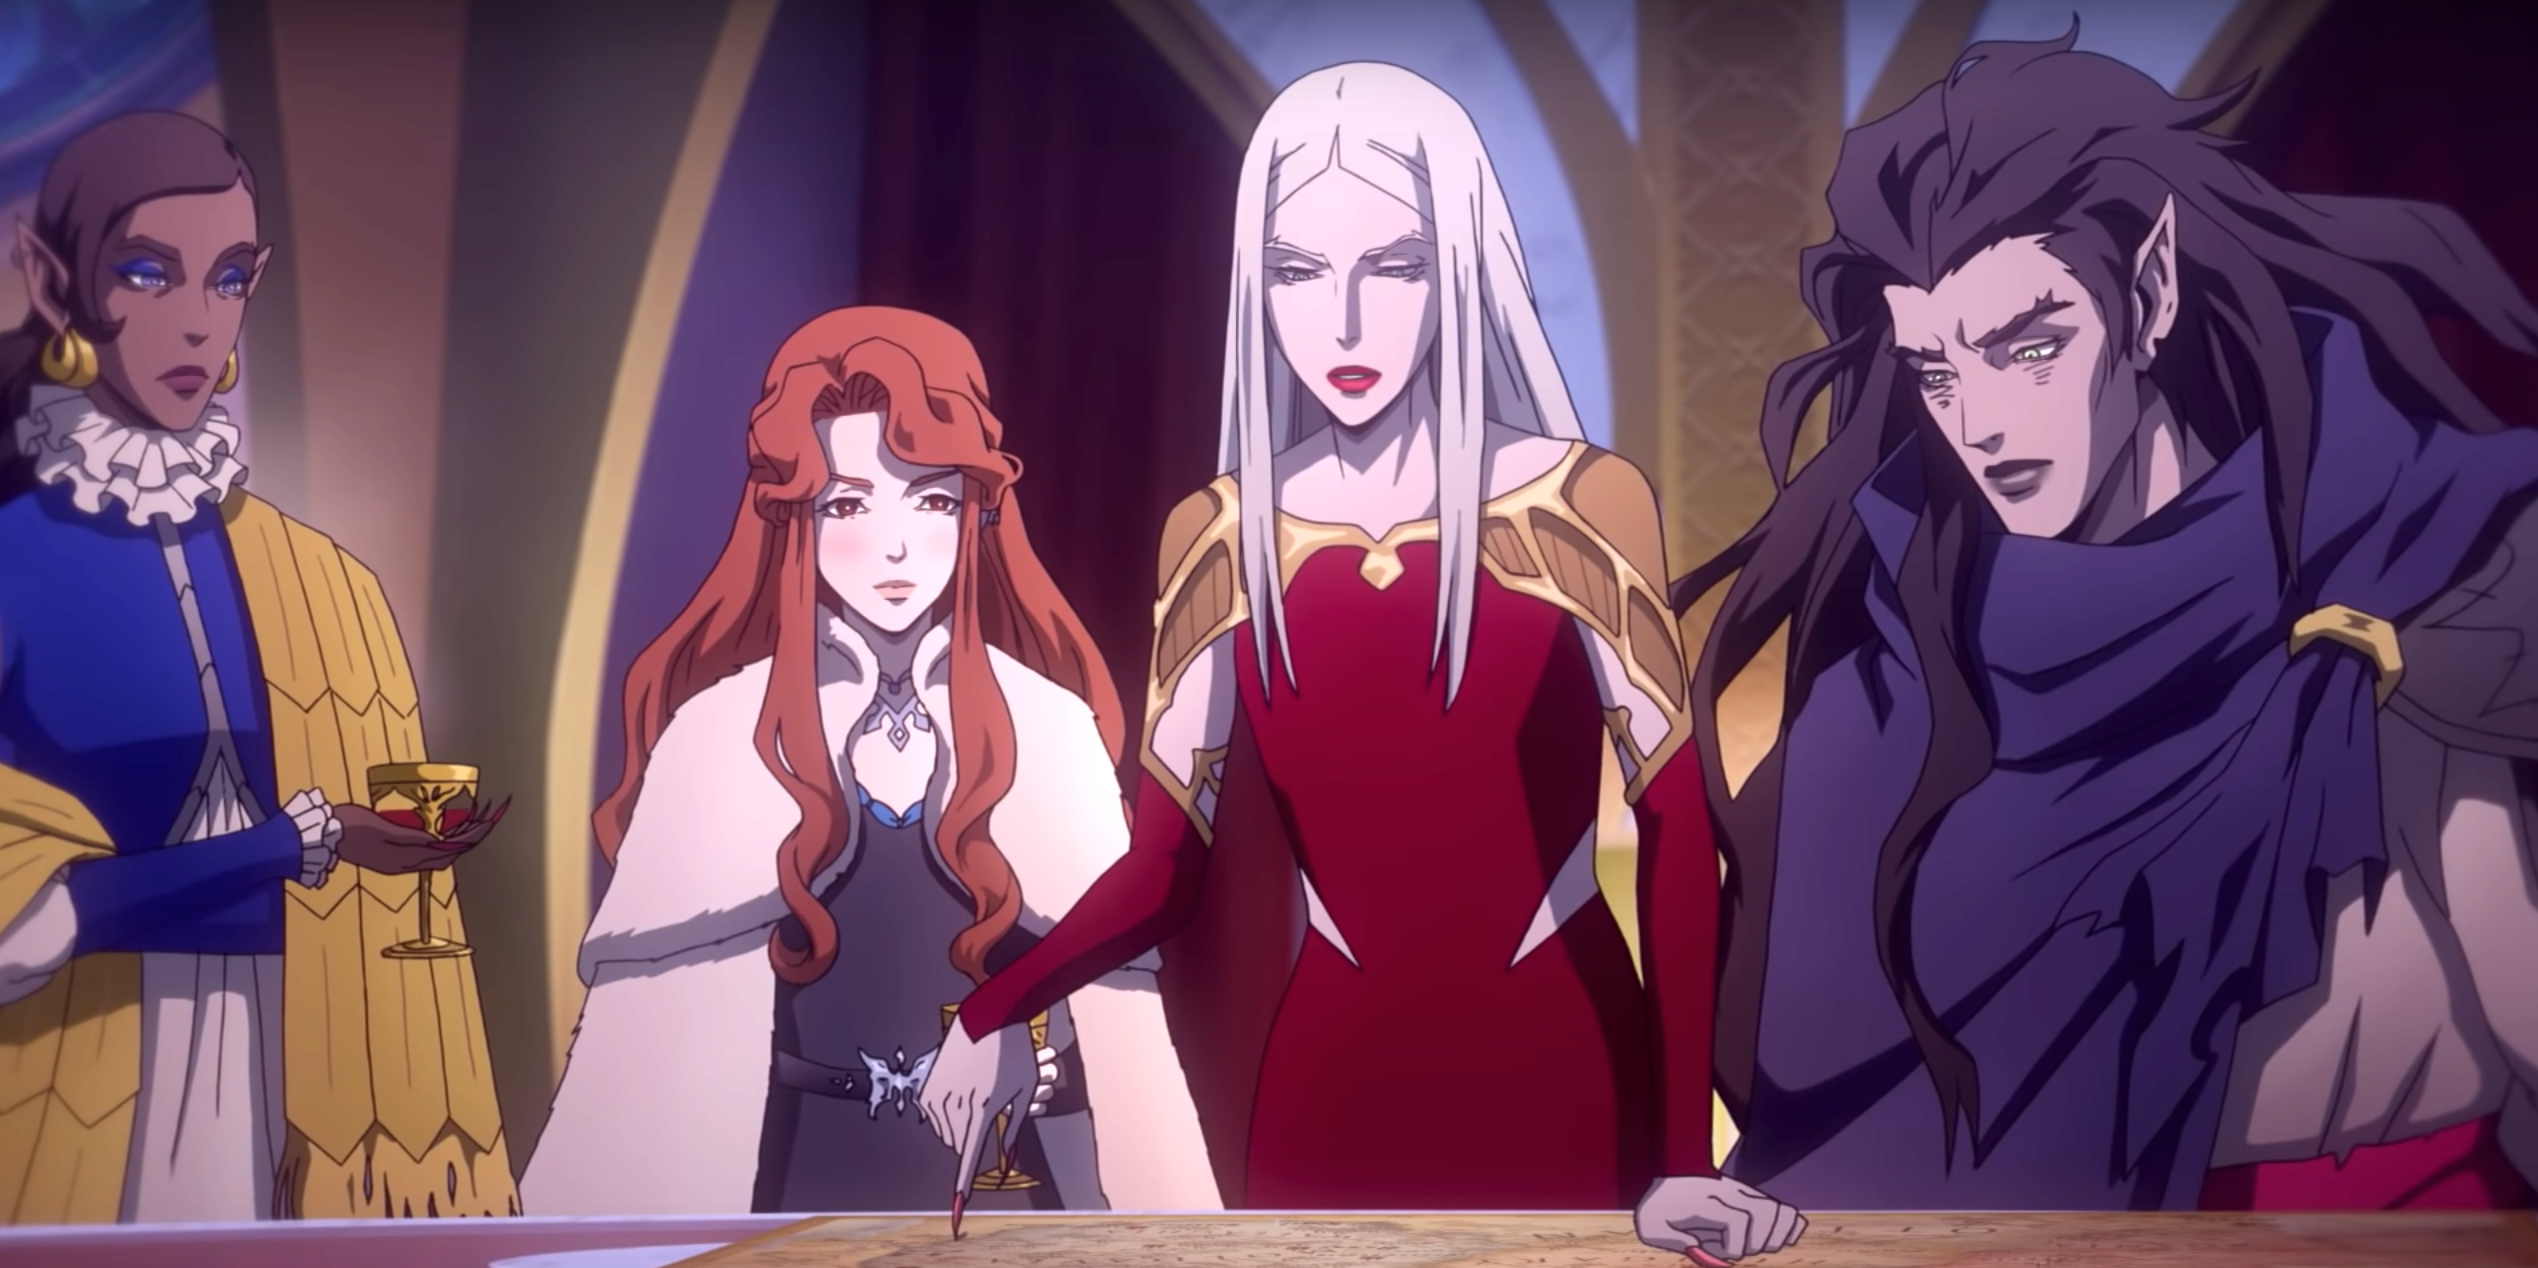 Netflix's Castlevania season 4 release date, cast and more